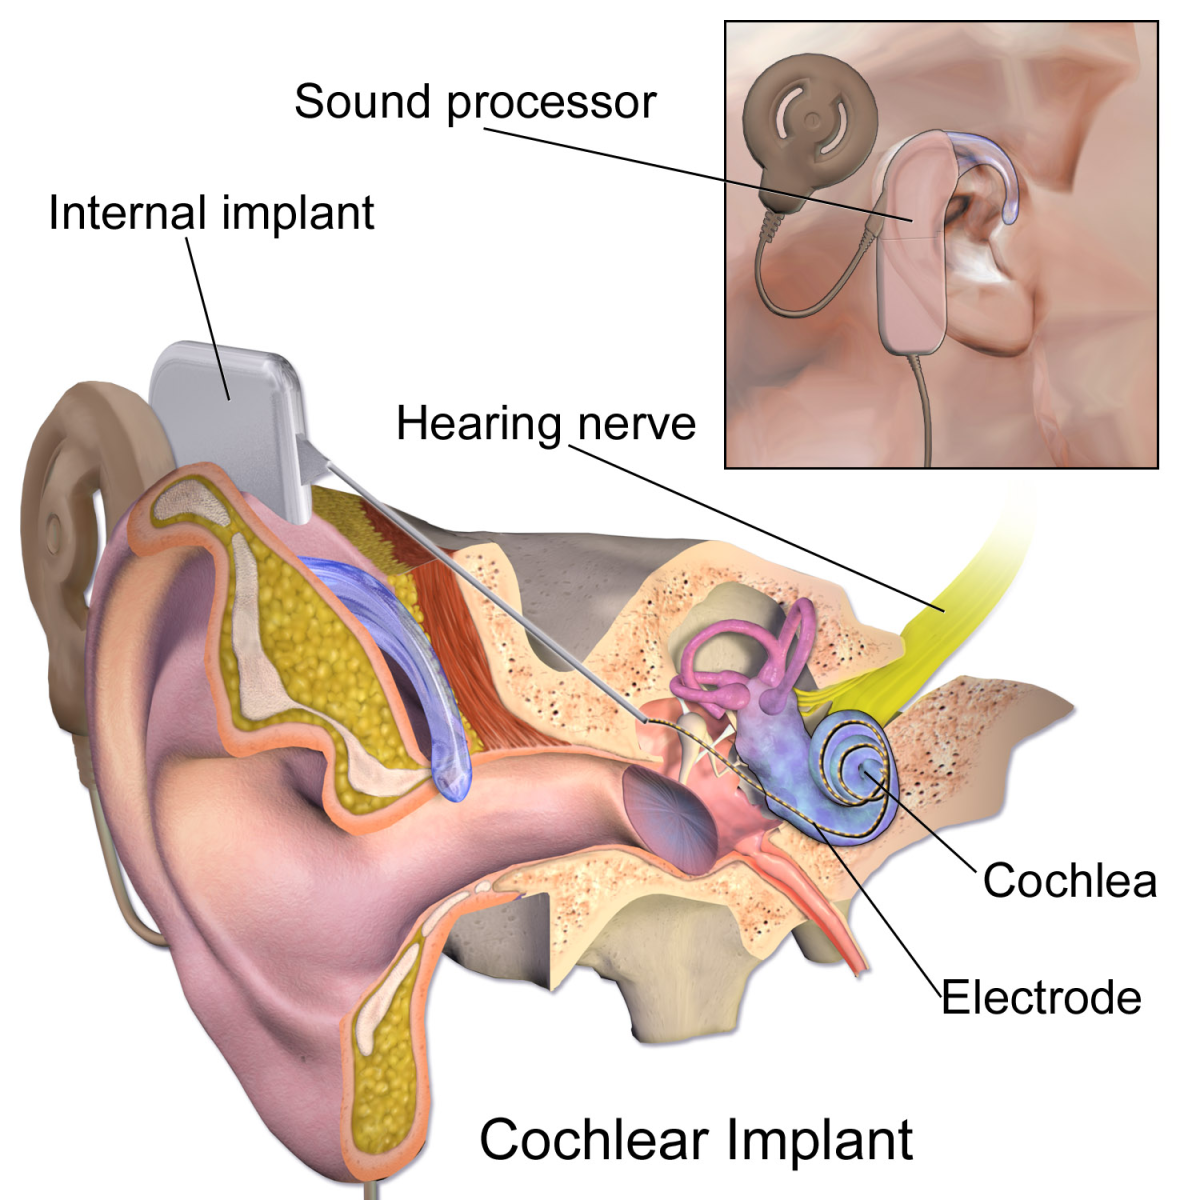 Parts of a cochlea implant